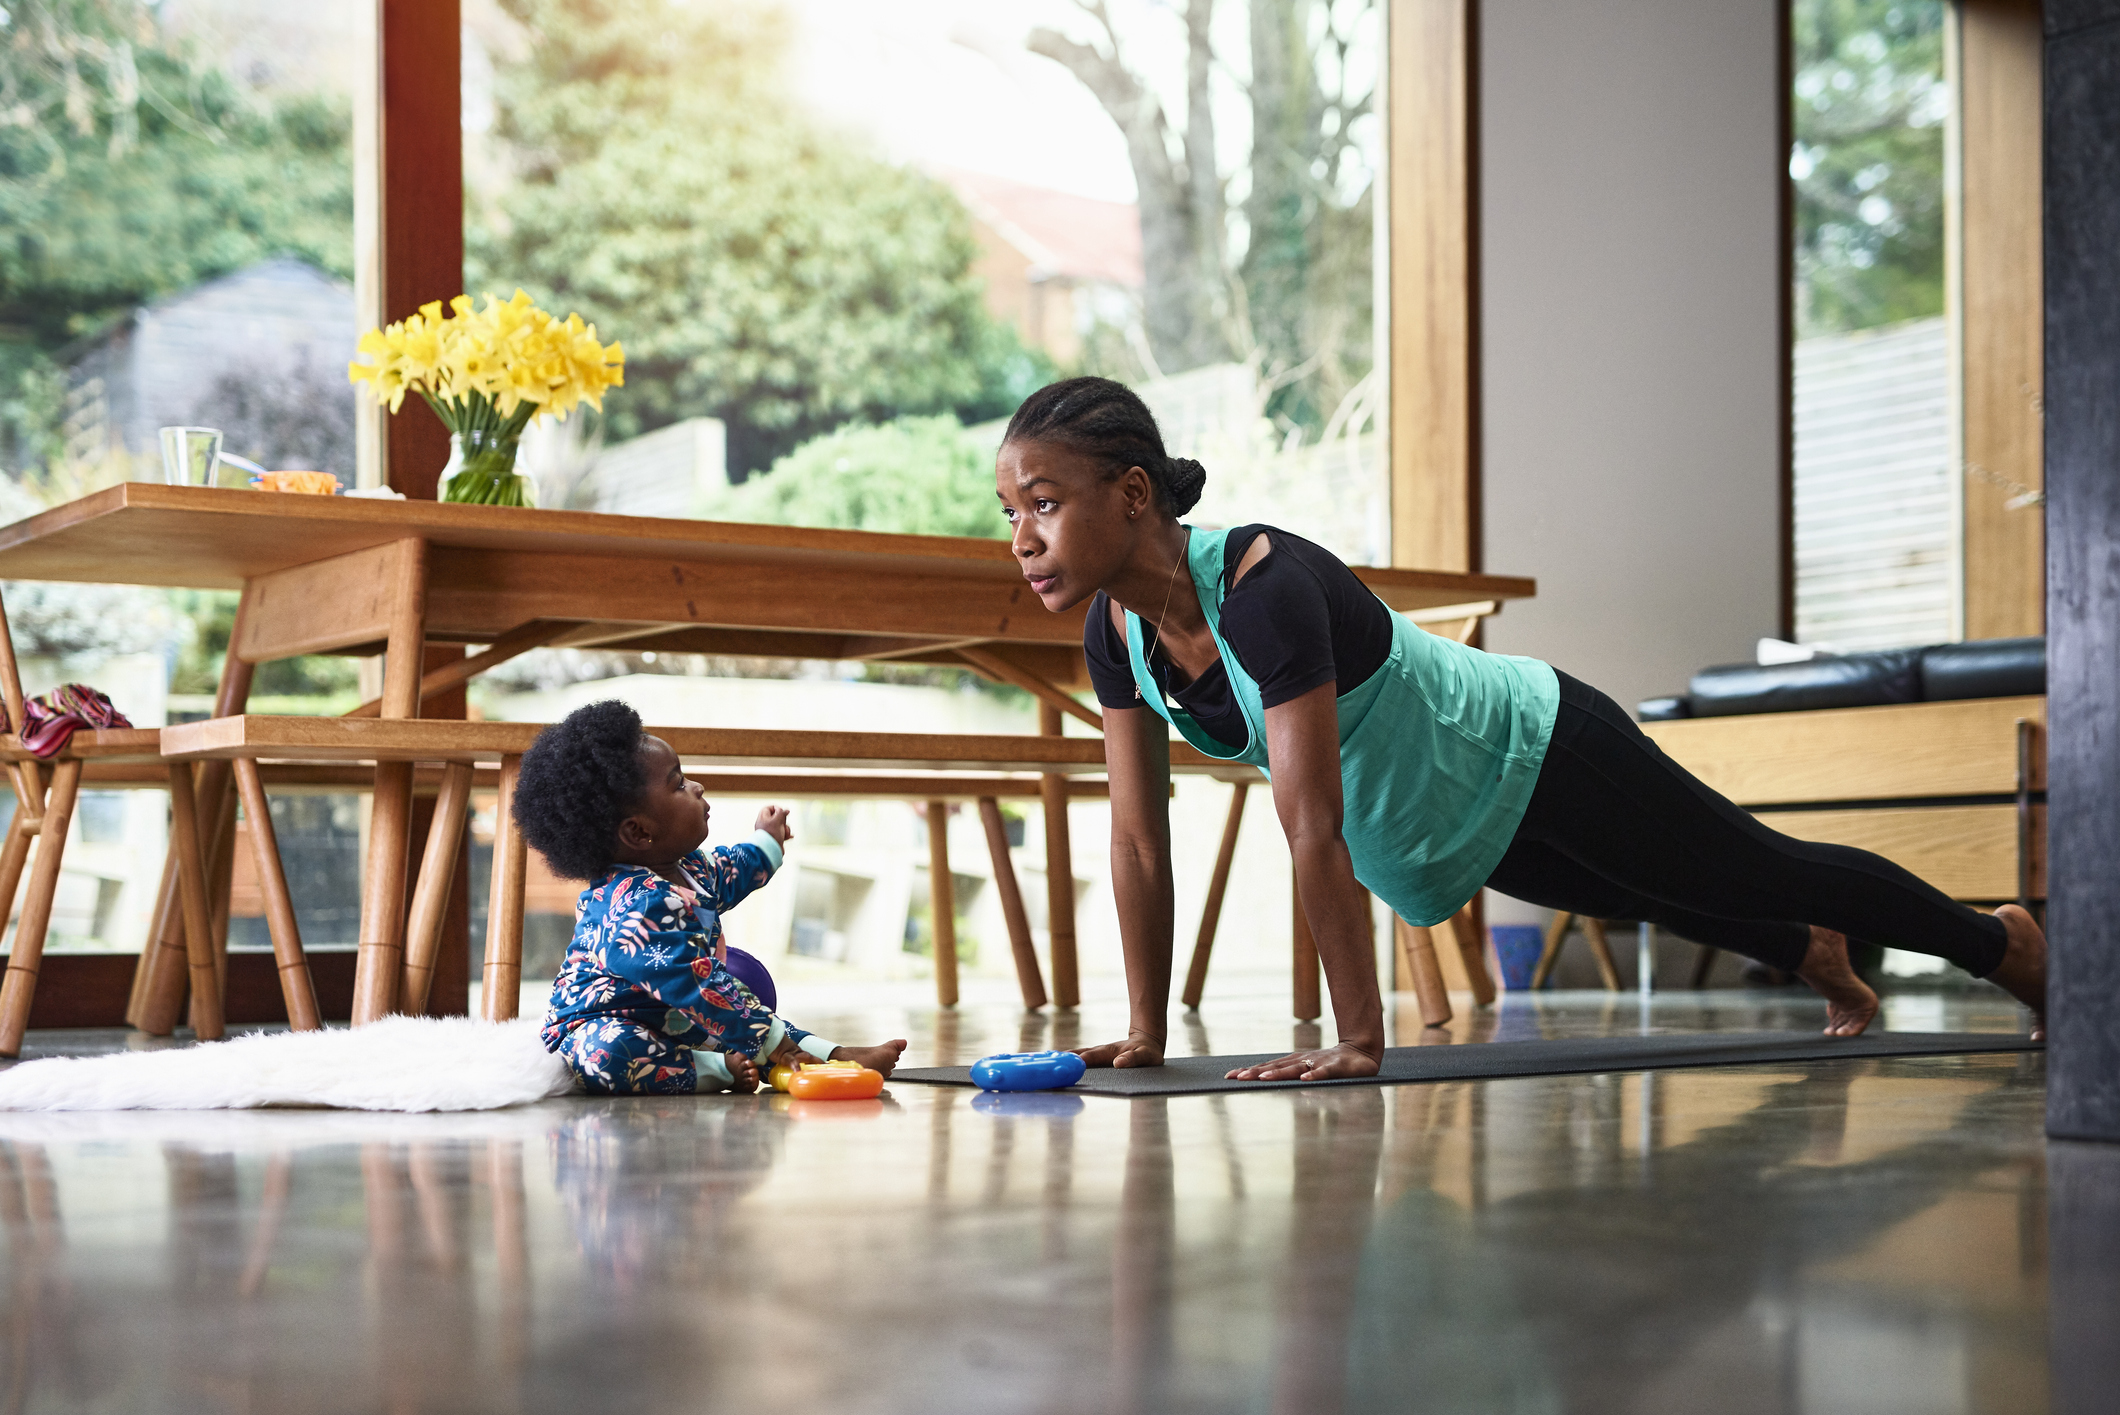 Exercise tips to follow when working at home